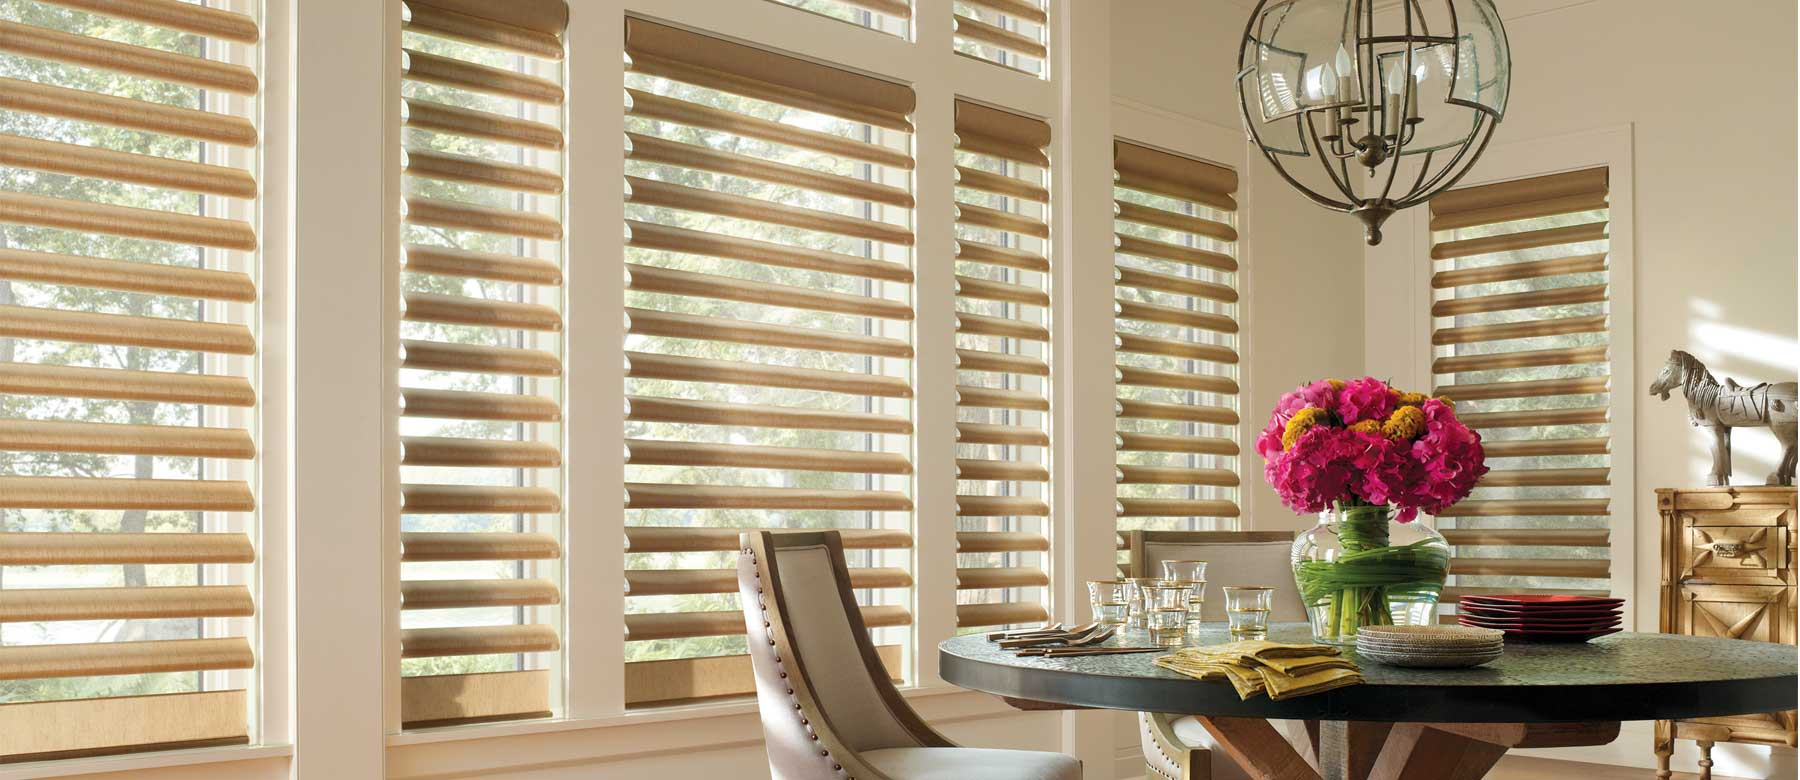 Perfectly Designed Blinds